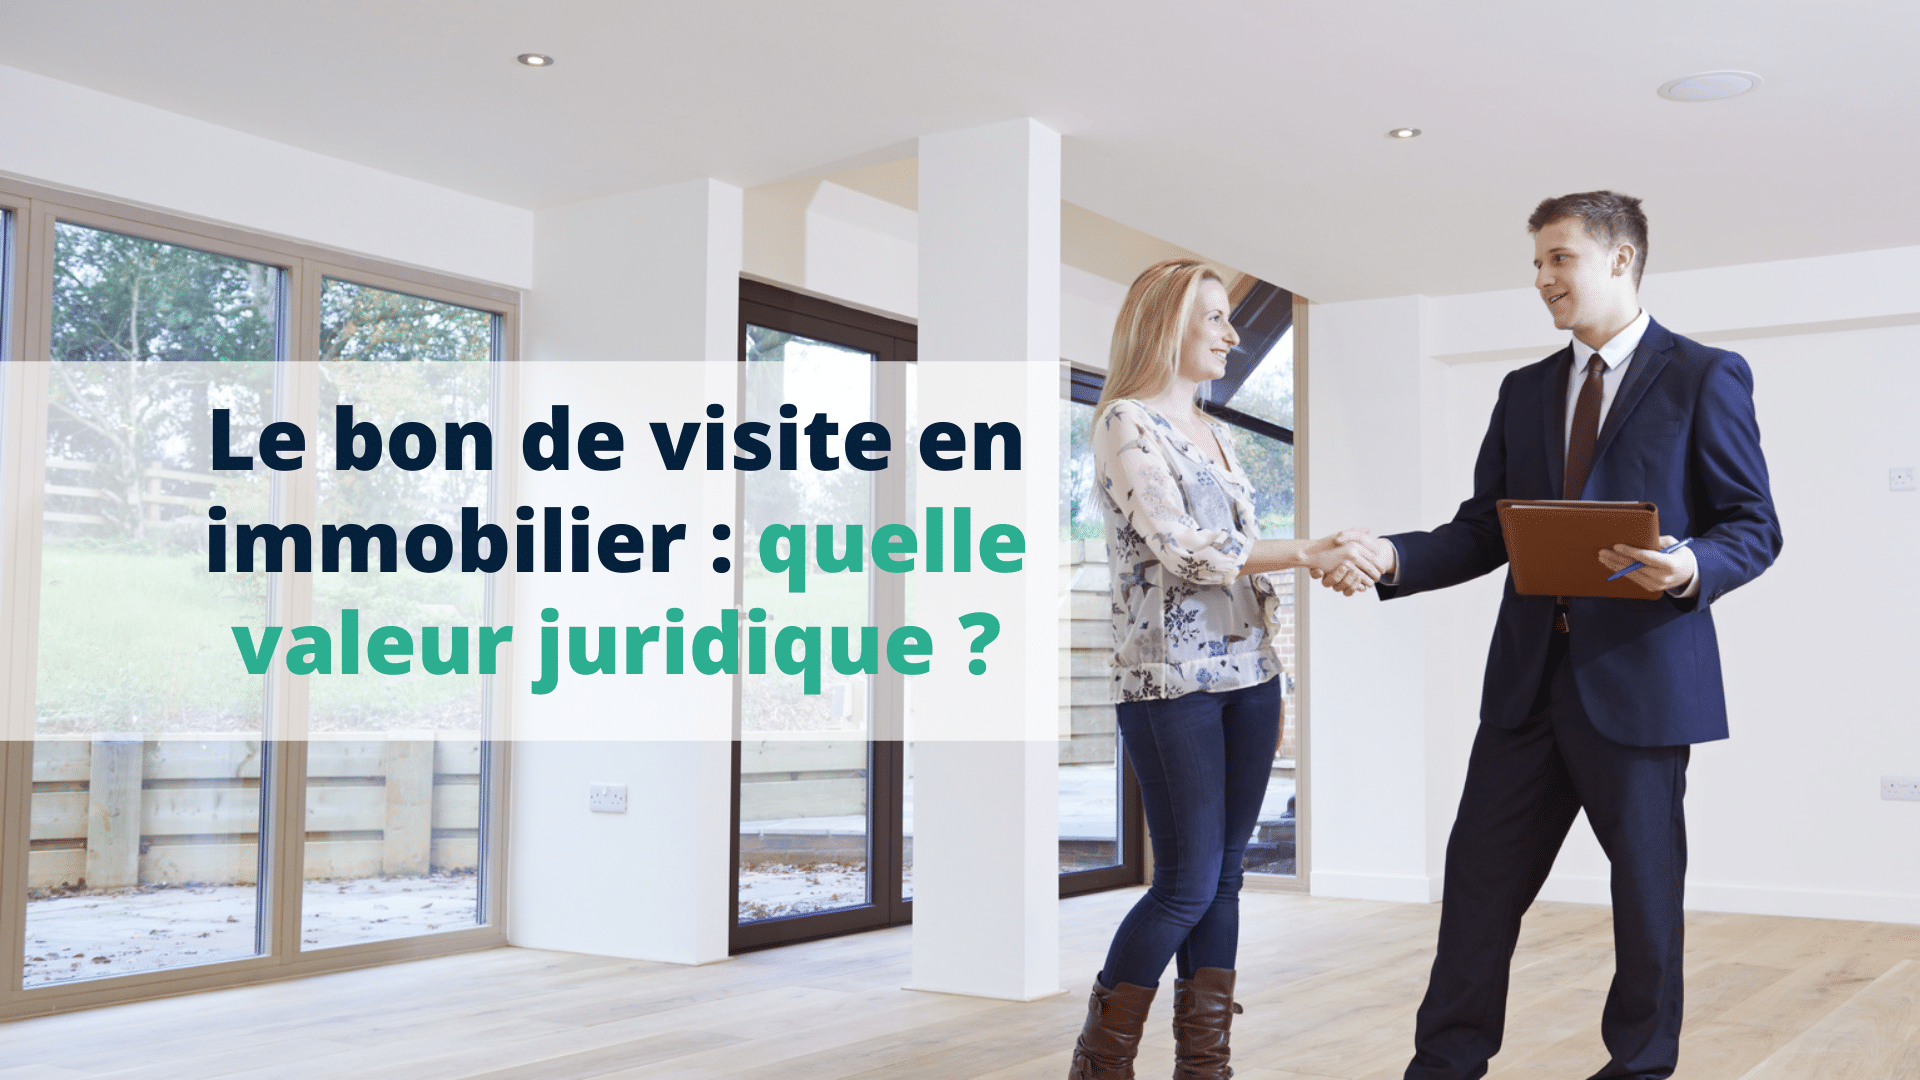 Le bon de visite en immobilier quelle valeur juridique - Start Learning